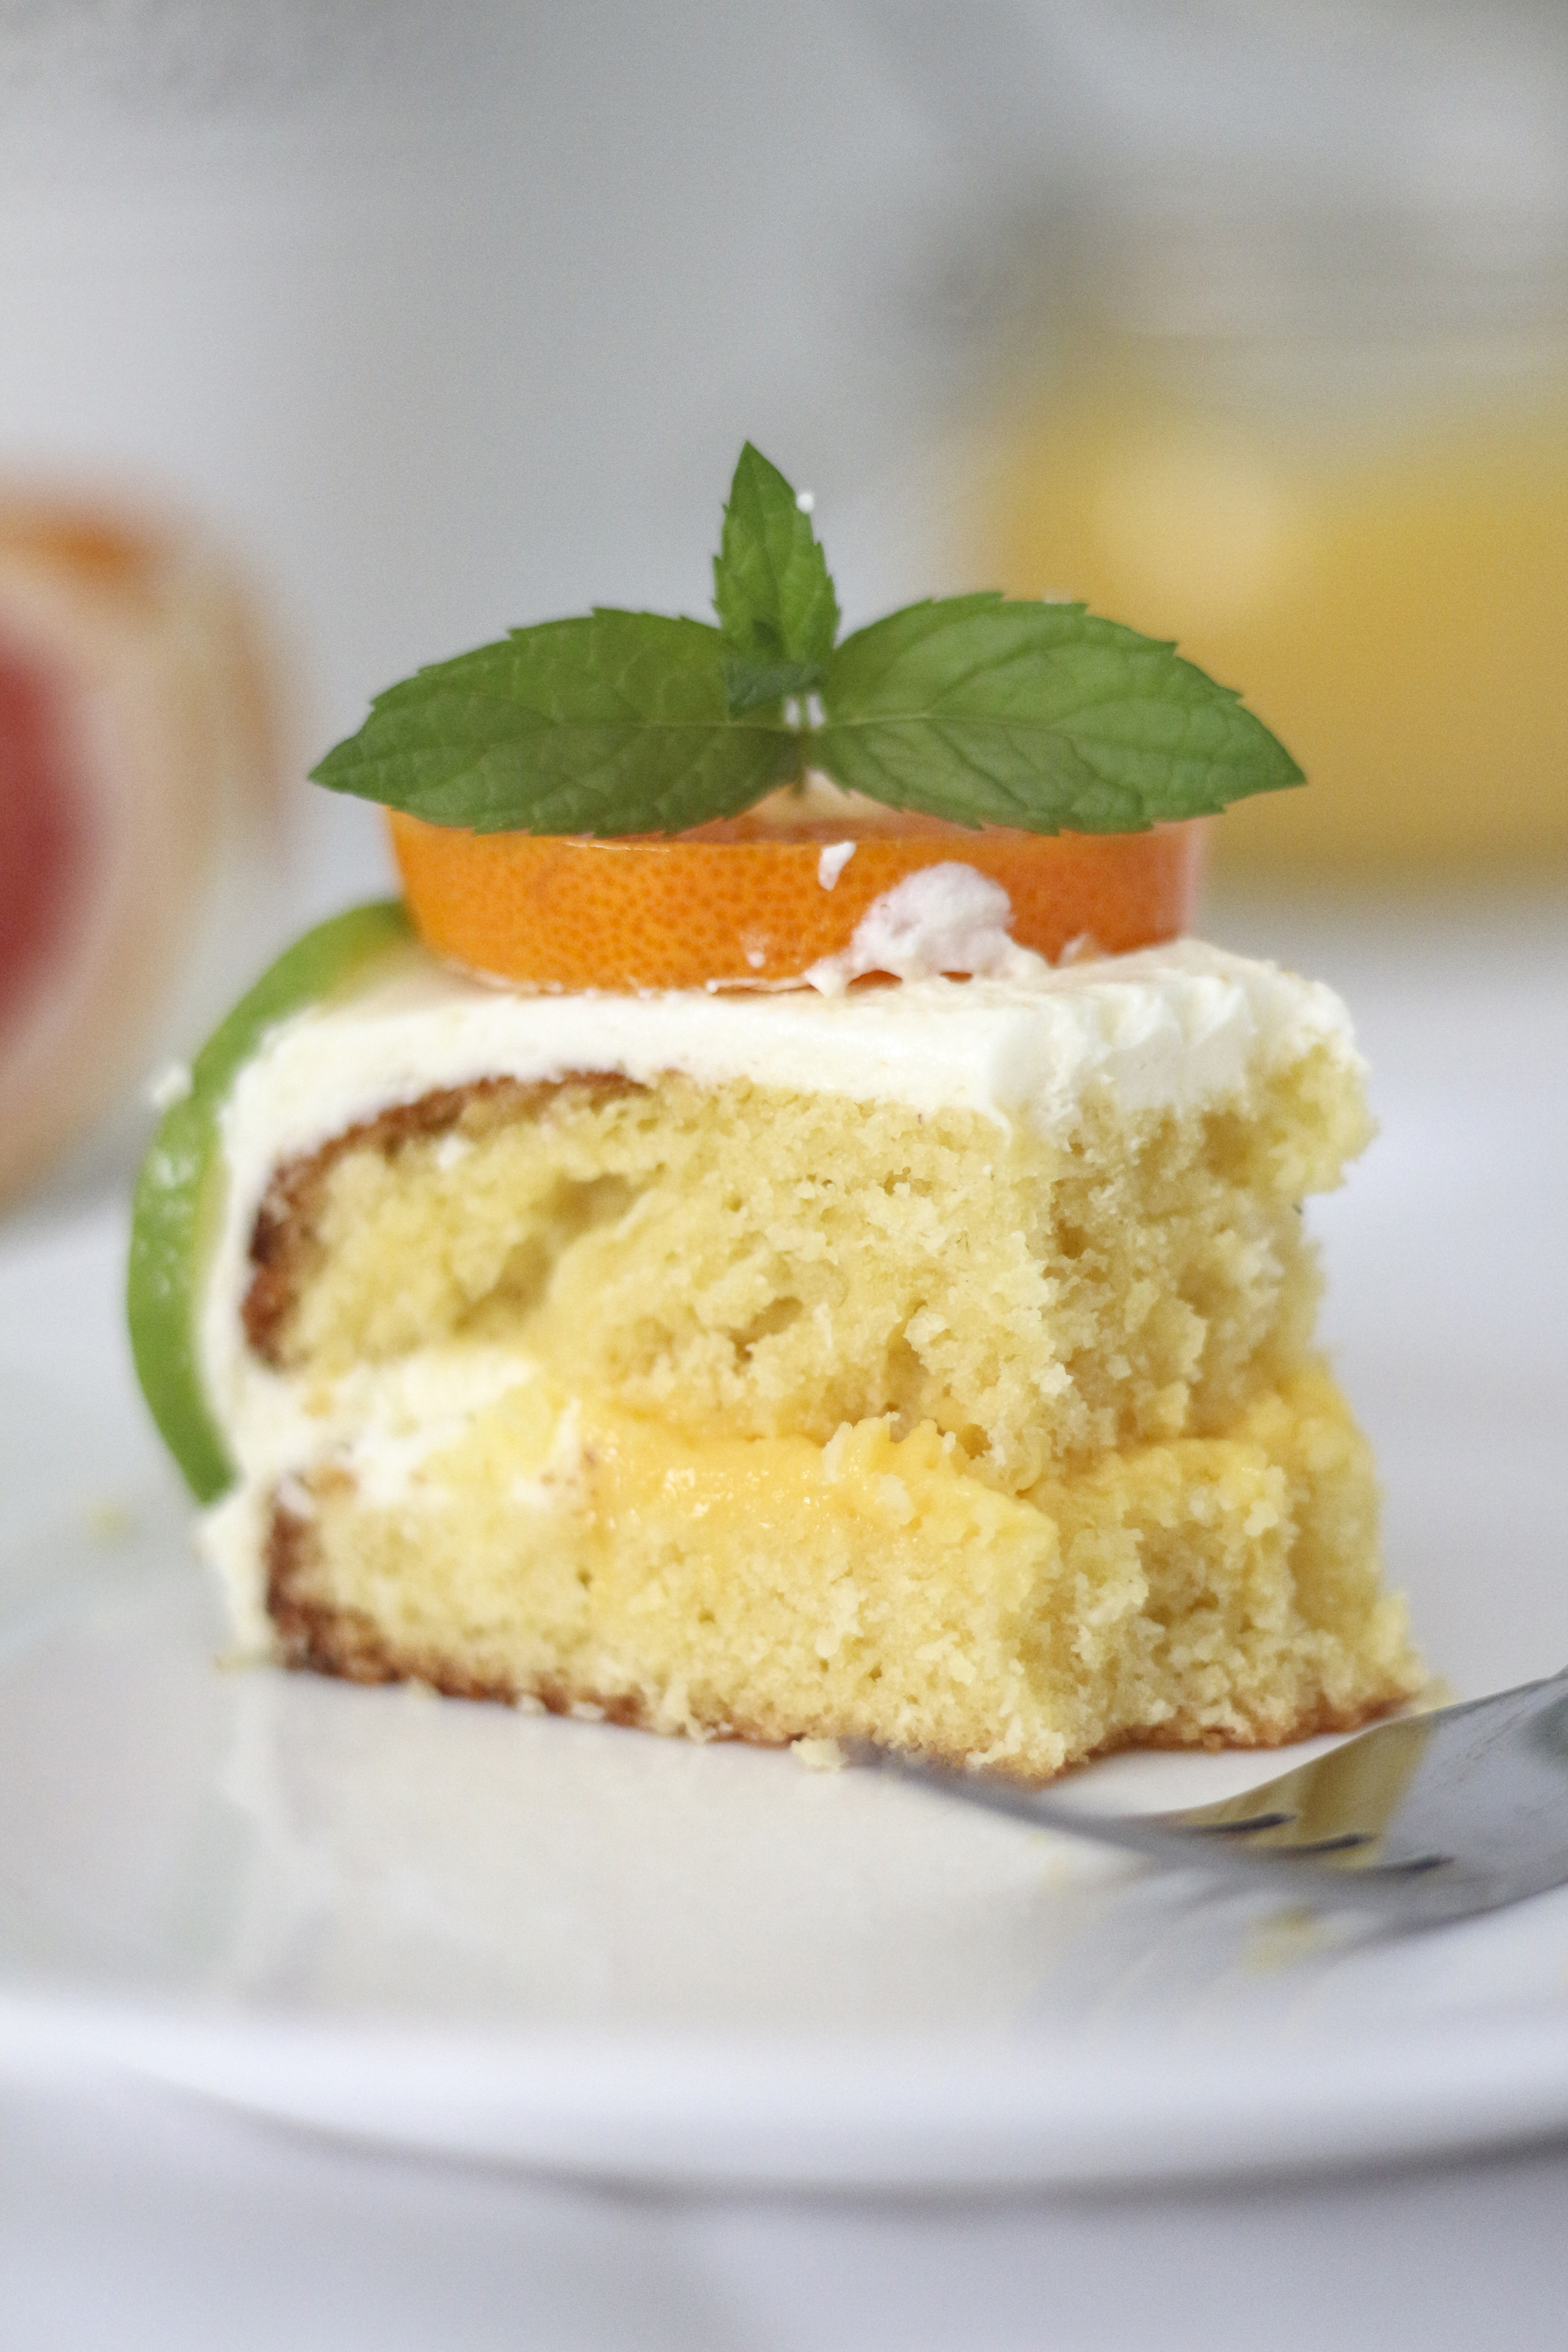 Coconut Cake with Citrus12